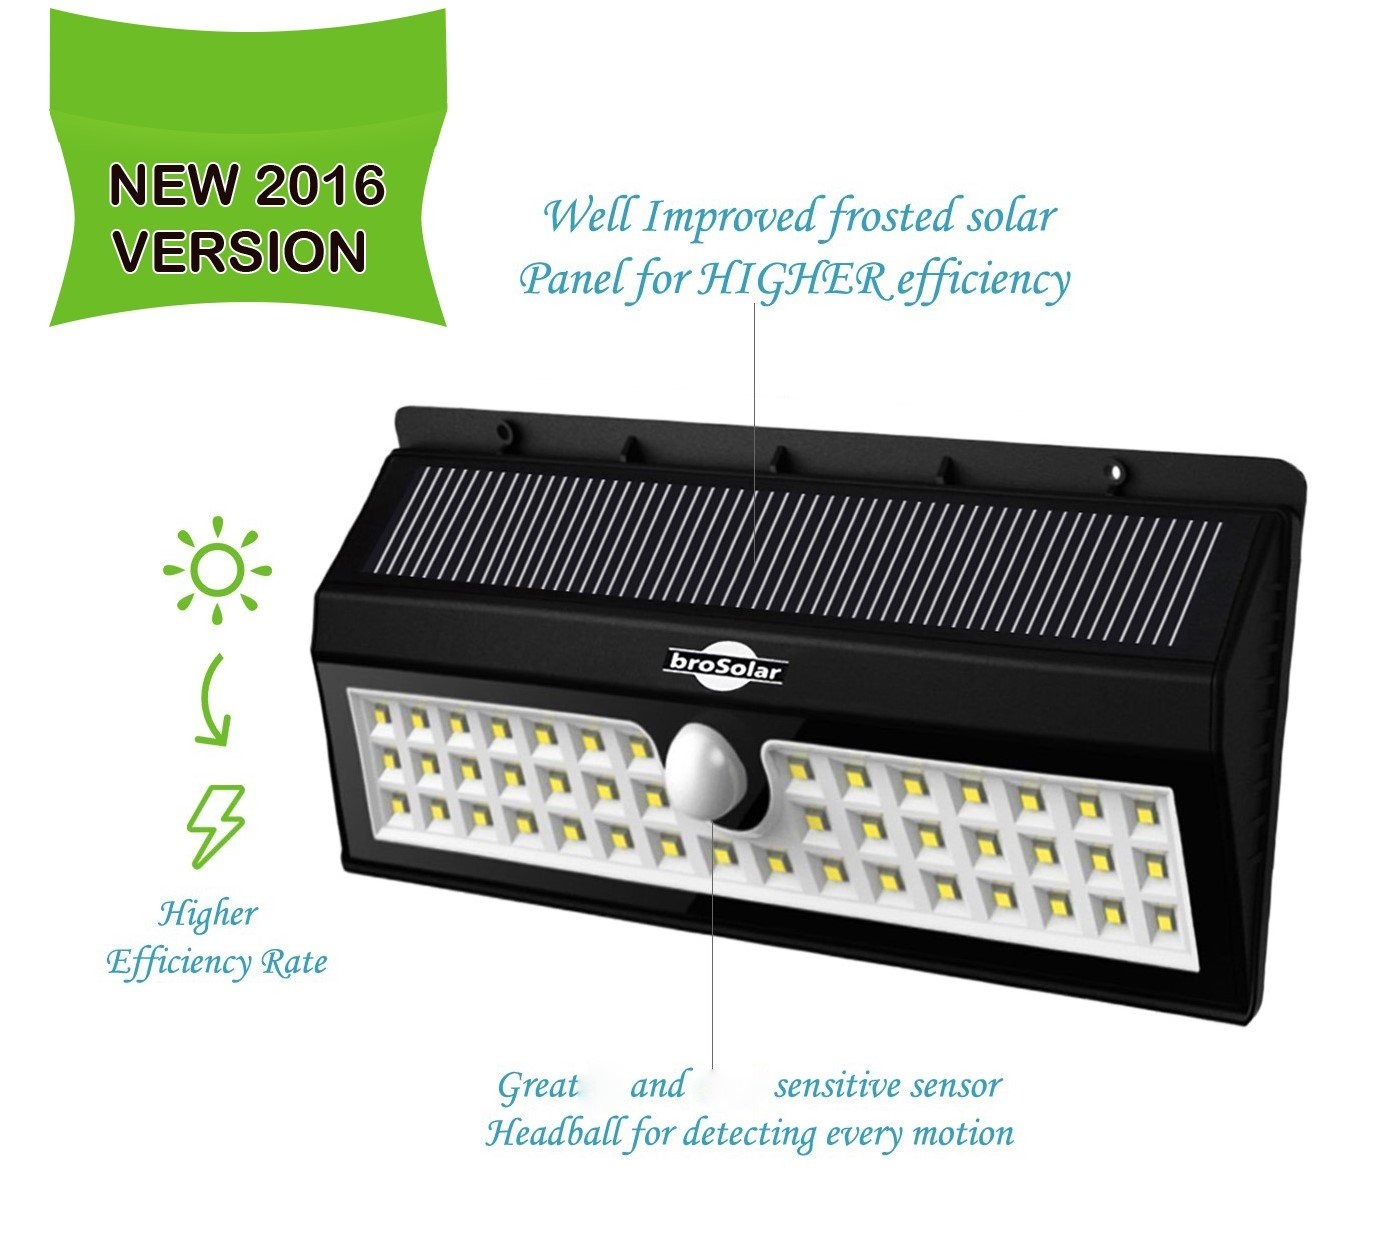 Super Bright 44 Big LED Motion Sensor Solar Powered Wireless Security Wall Outdoor Garden Ponds Accent Lighting Pond Decor Lamp Finials Lights Three Smart Modes Weatherproof Easy Install Green Tech by broSolar (Image #2)